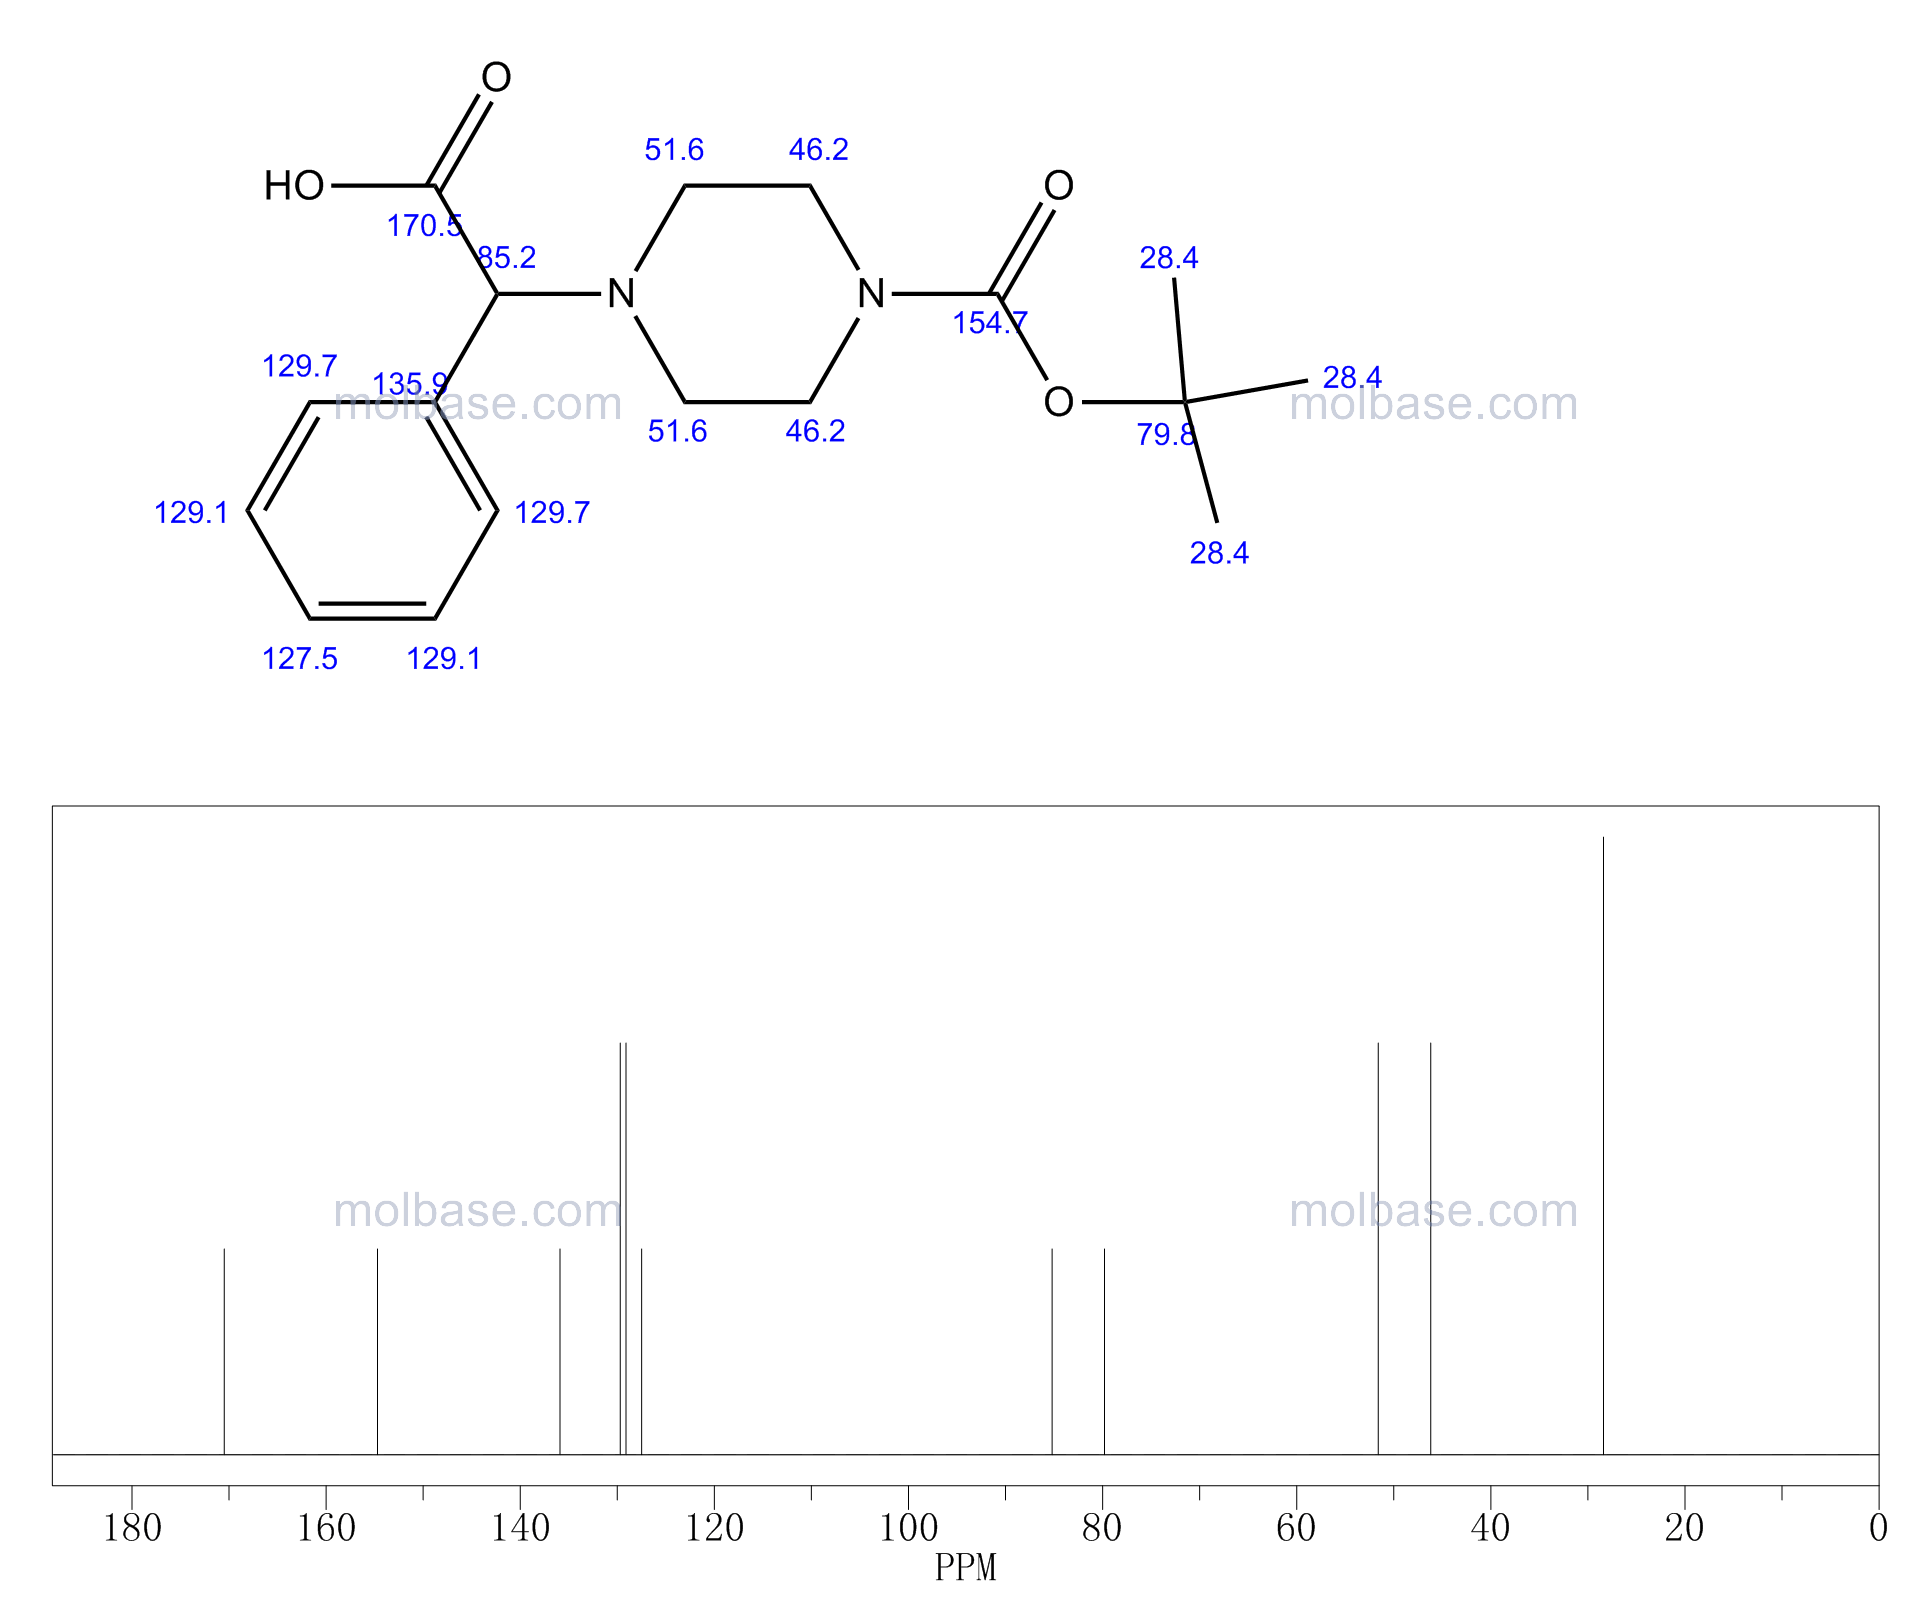 2-[4-[(2-methylpropan-2-yl)oxycarbonyl]piperazin-1-yl]-2-phenylacetic acid NMR spectra analysis, Chemical CAS NO. 347186-49-6 NMR spectral analysis, 2-[4-[(2-methylpropan-2-yl)oxycarbonyl]piperazin-1-yl]-2-phenylacetic acid C-NMR spectrum